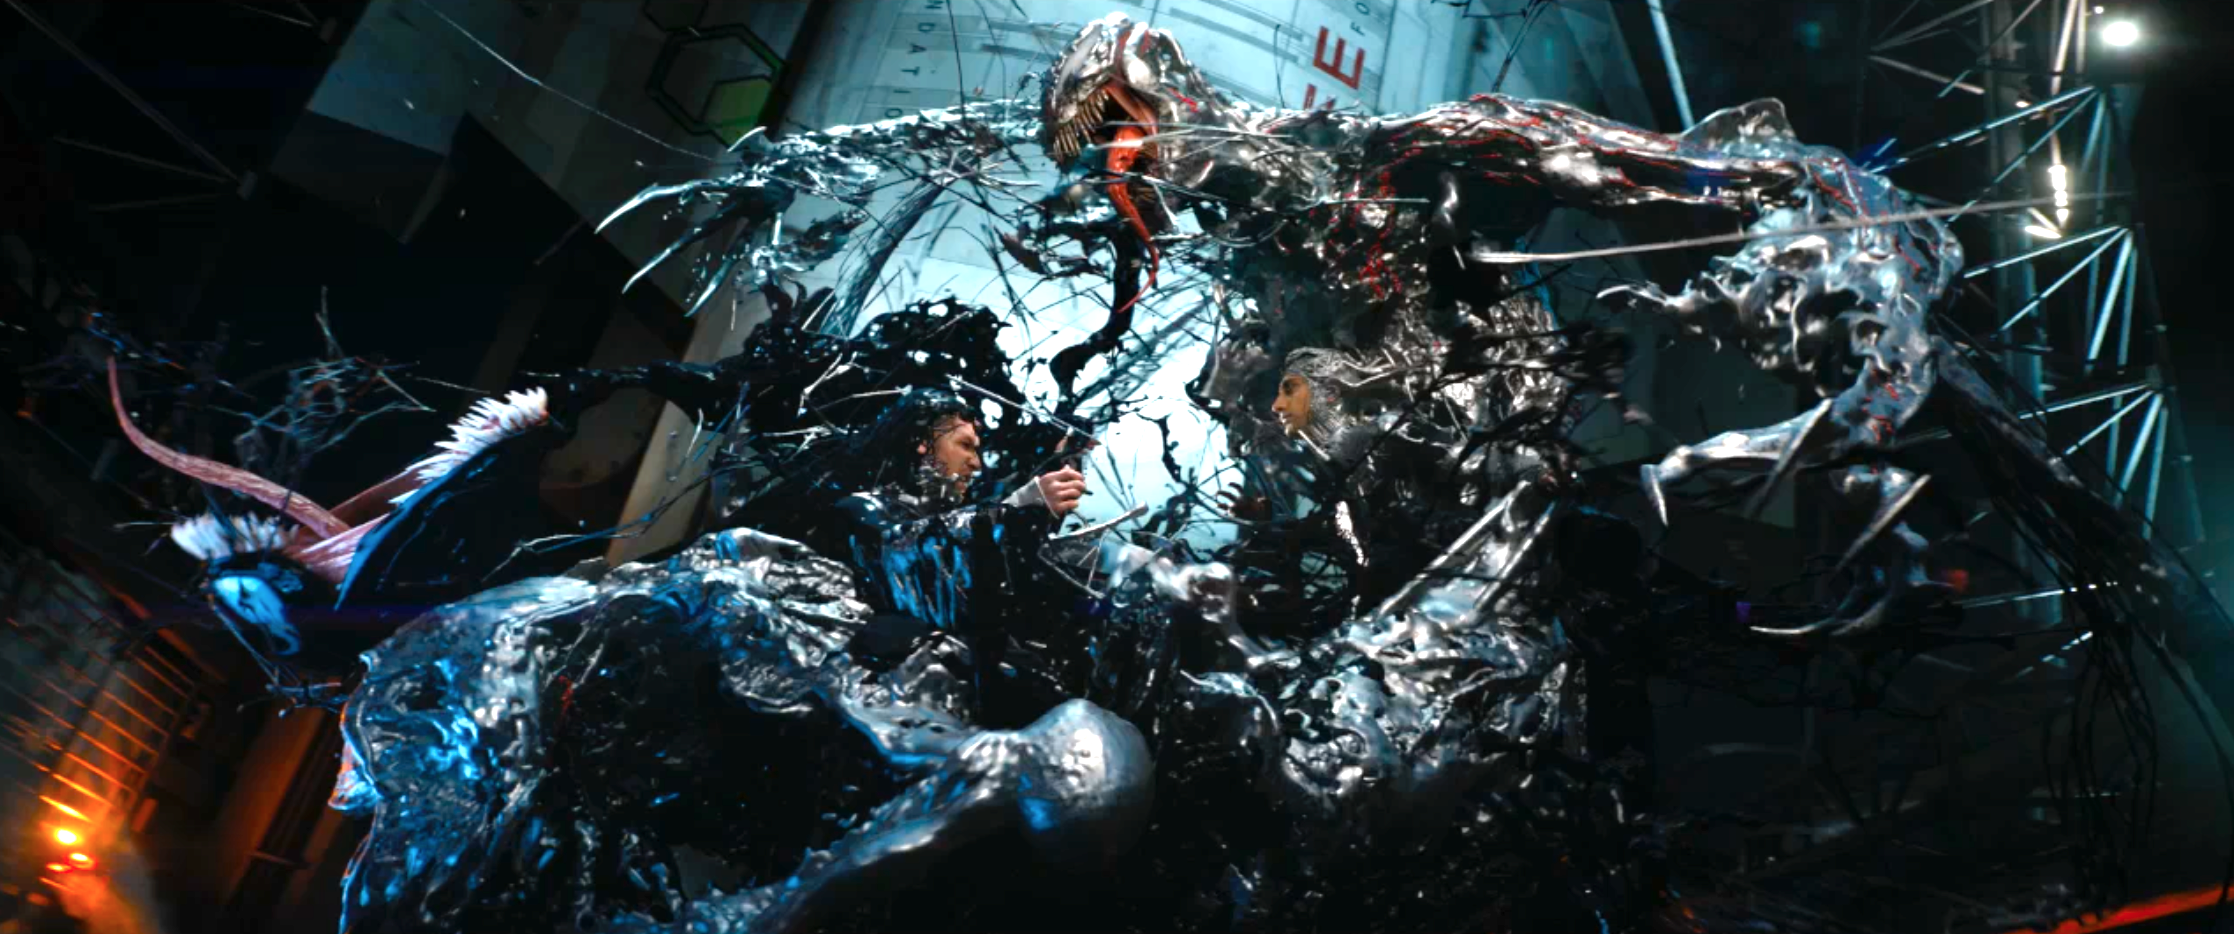 5 Venom stories that could make a great sequel